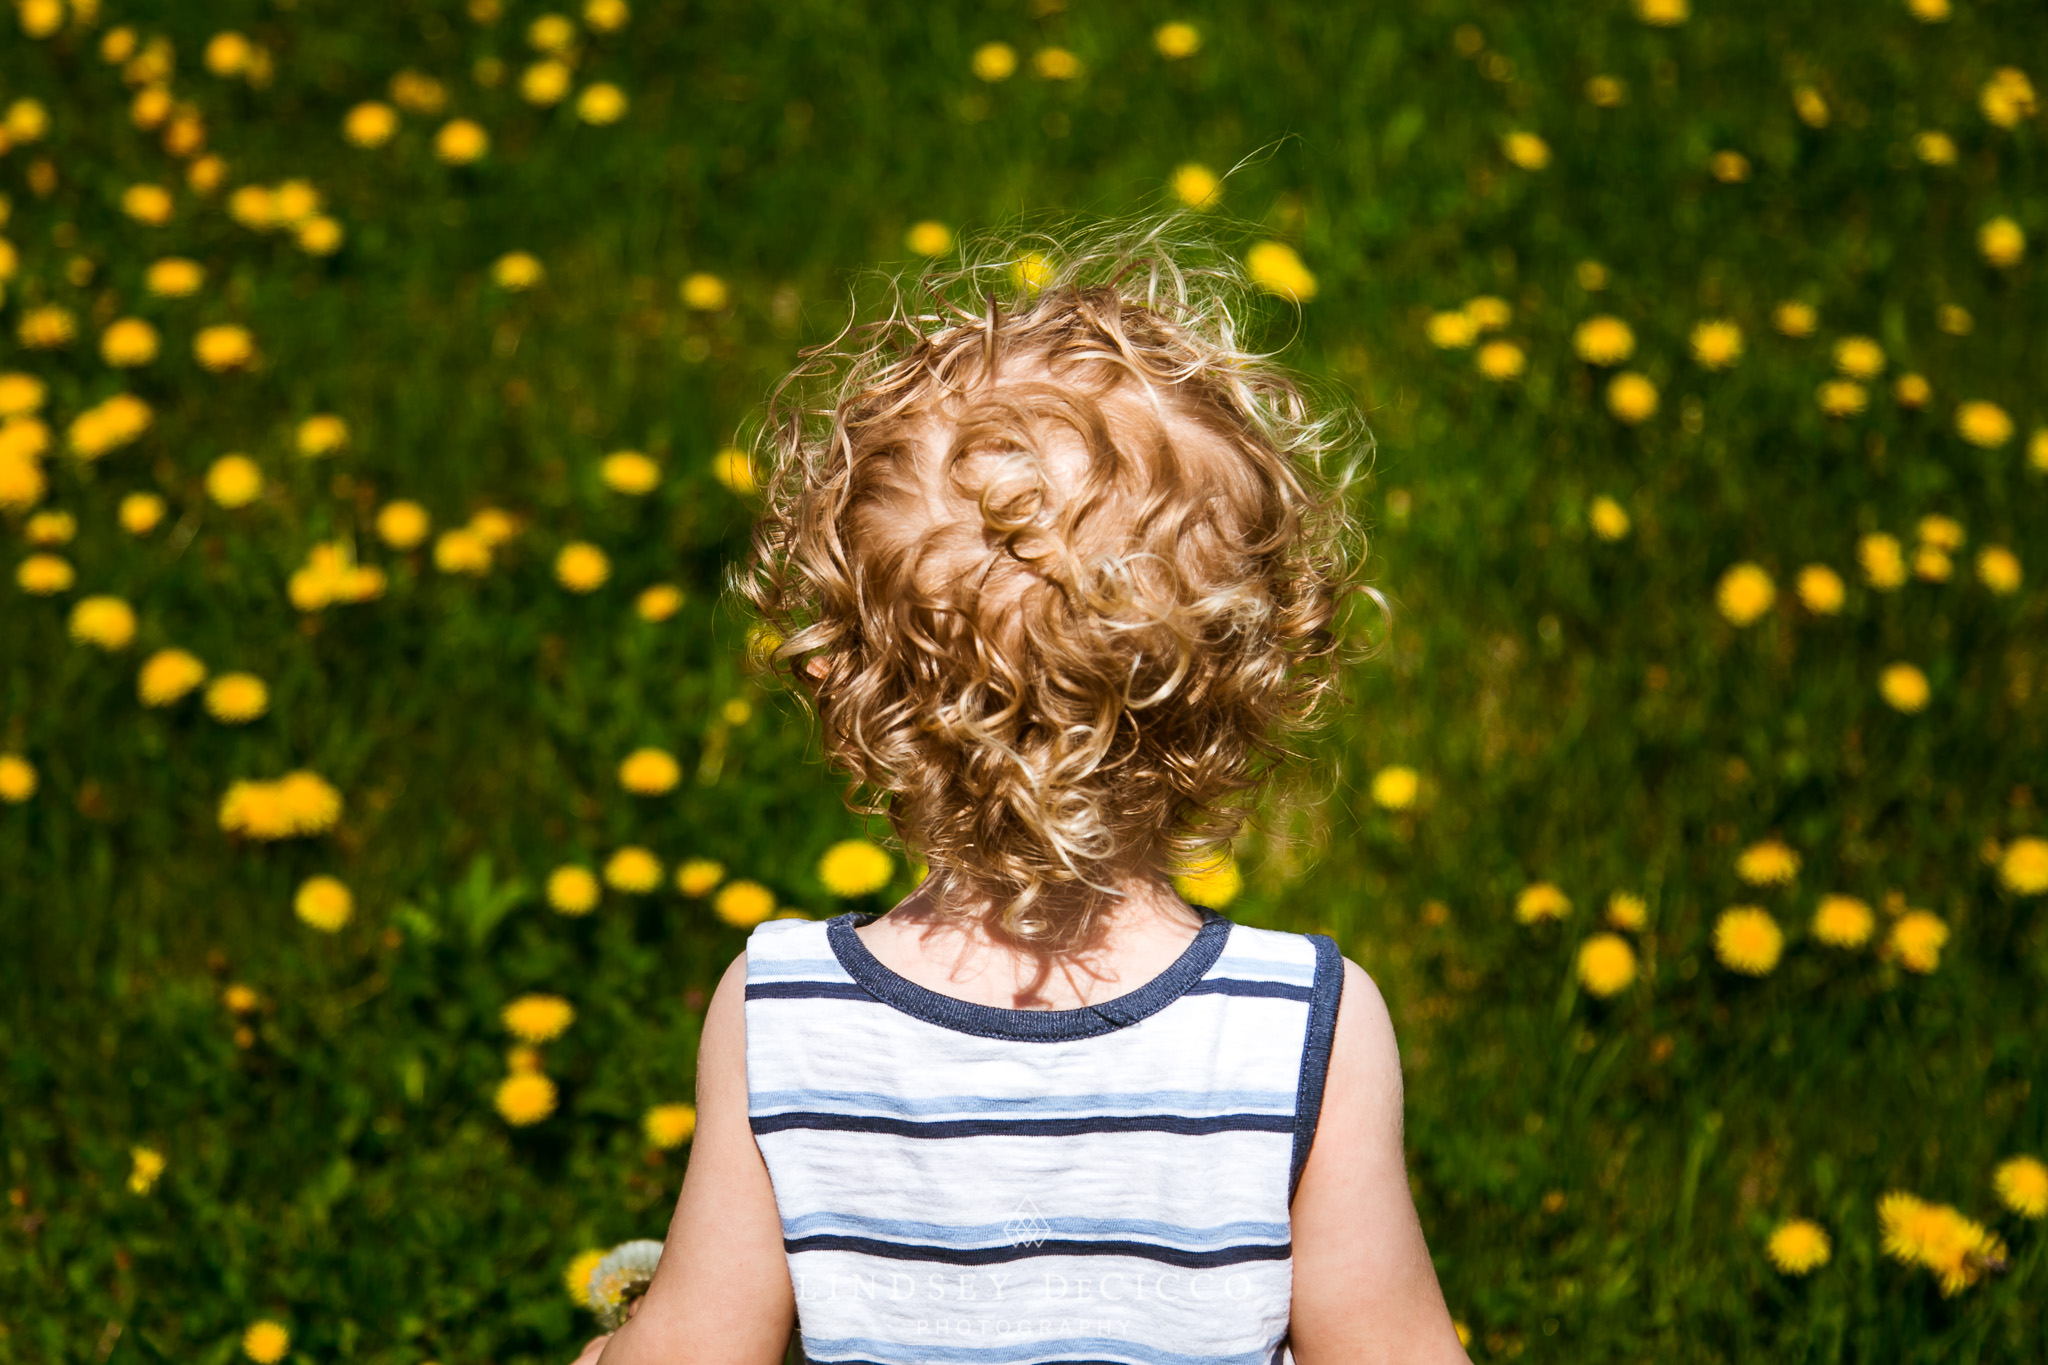 blonde curly haired toddler in dandelion field